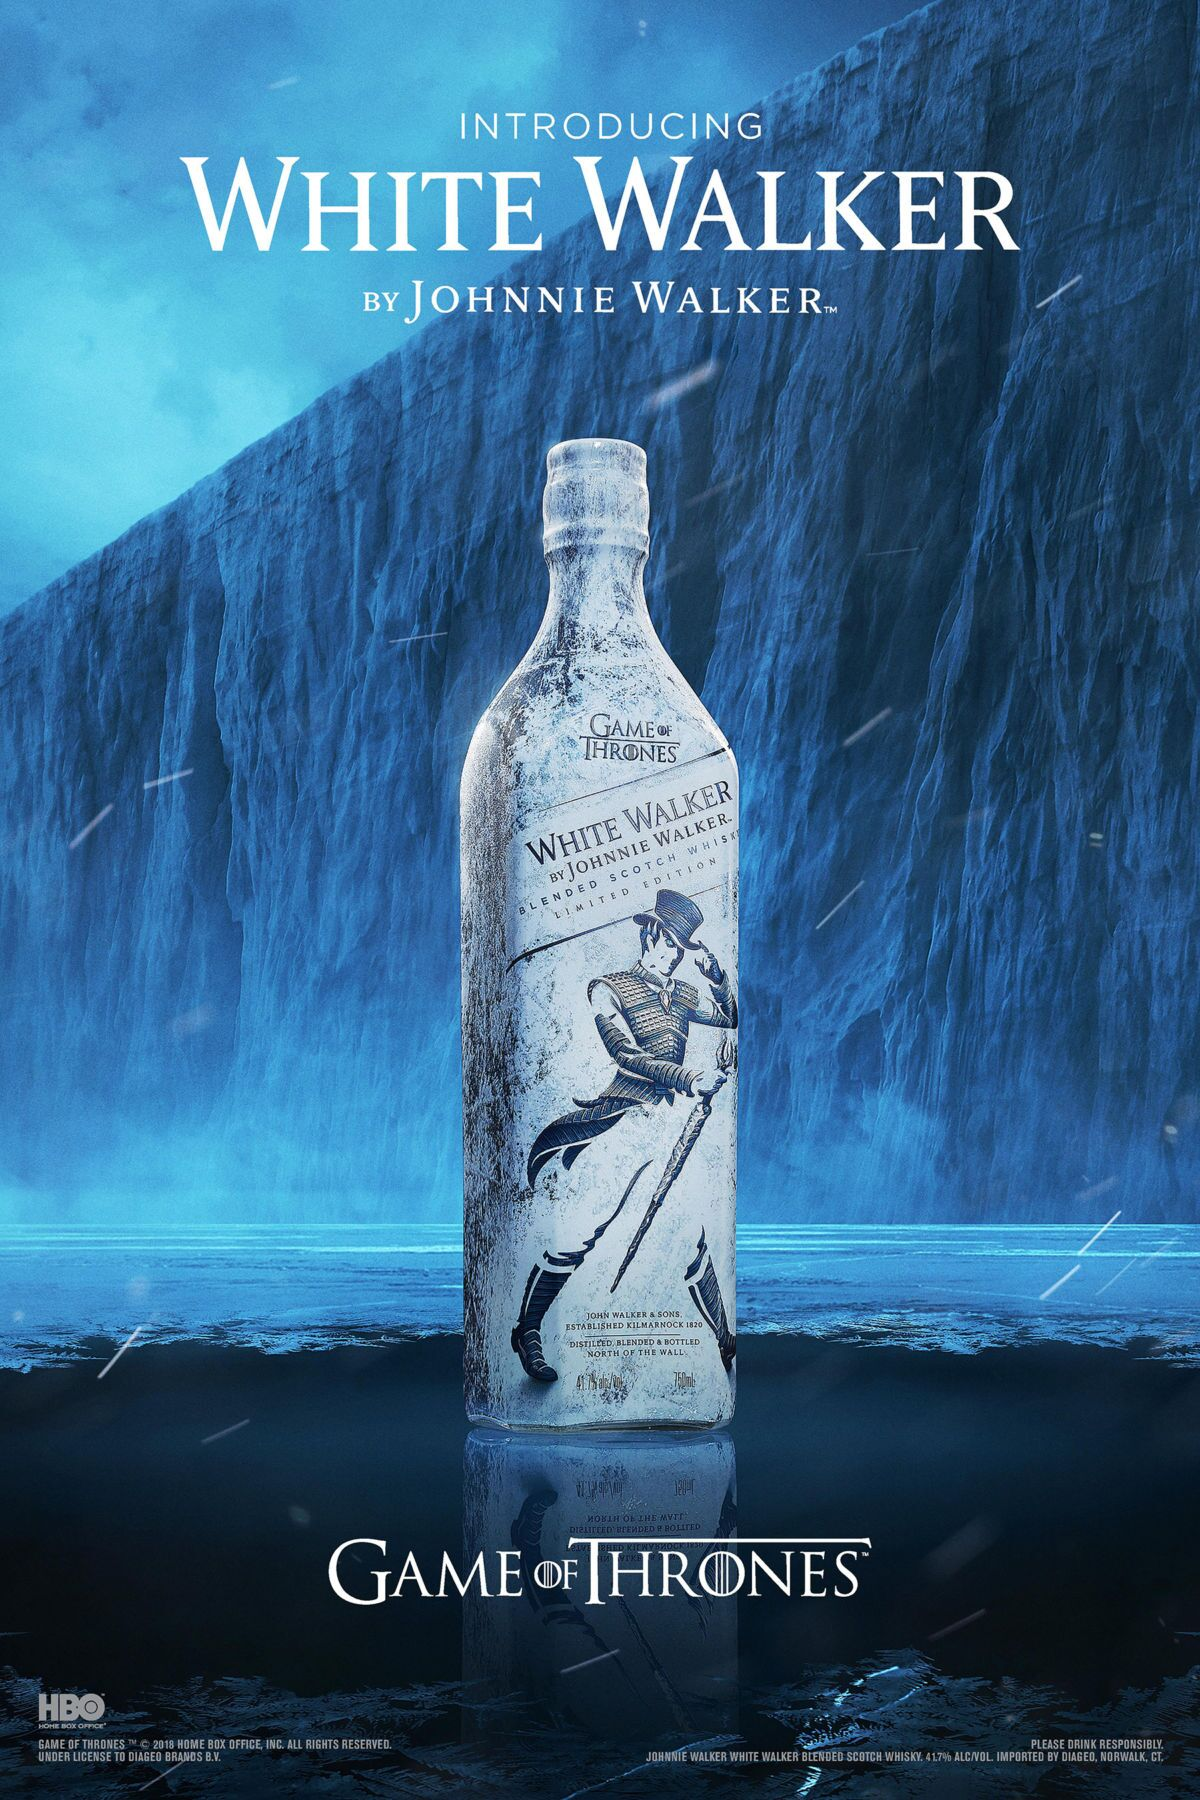 We drink and know things: The perfect drinks for the end of Game of Thrones